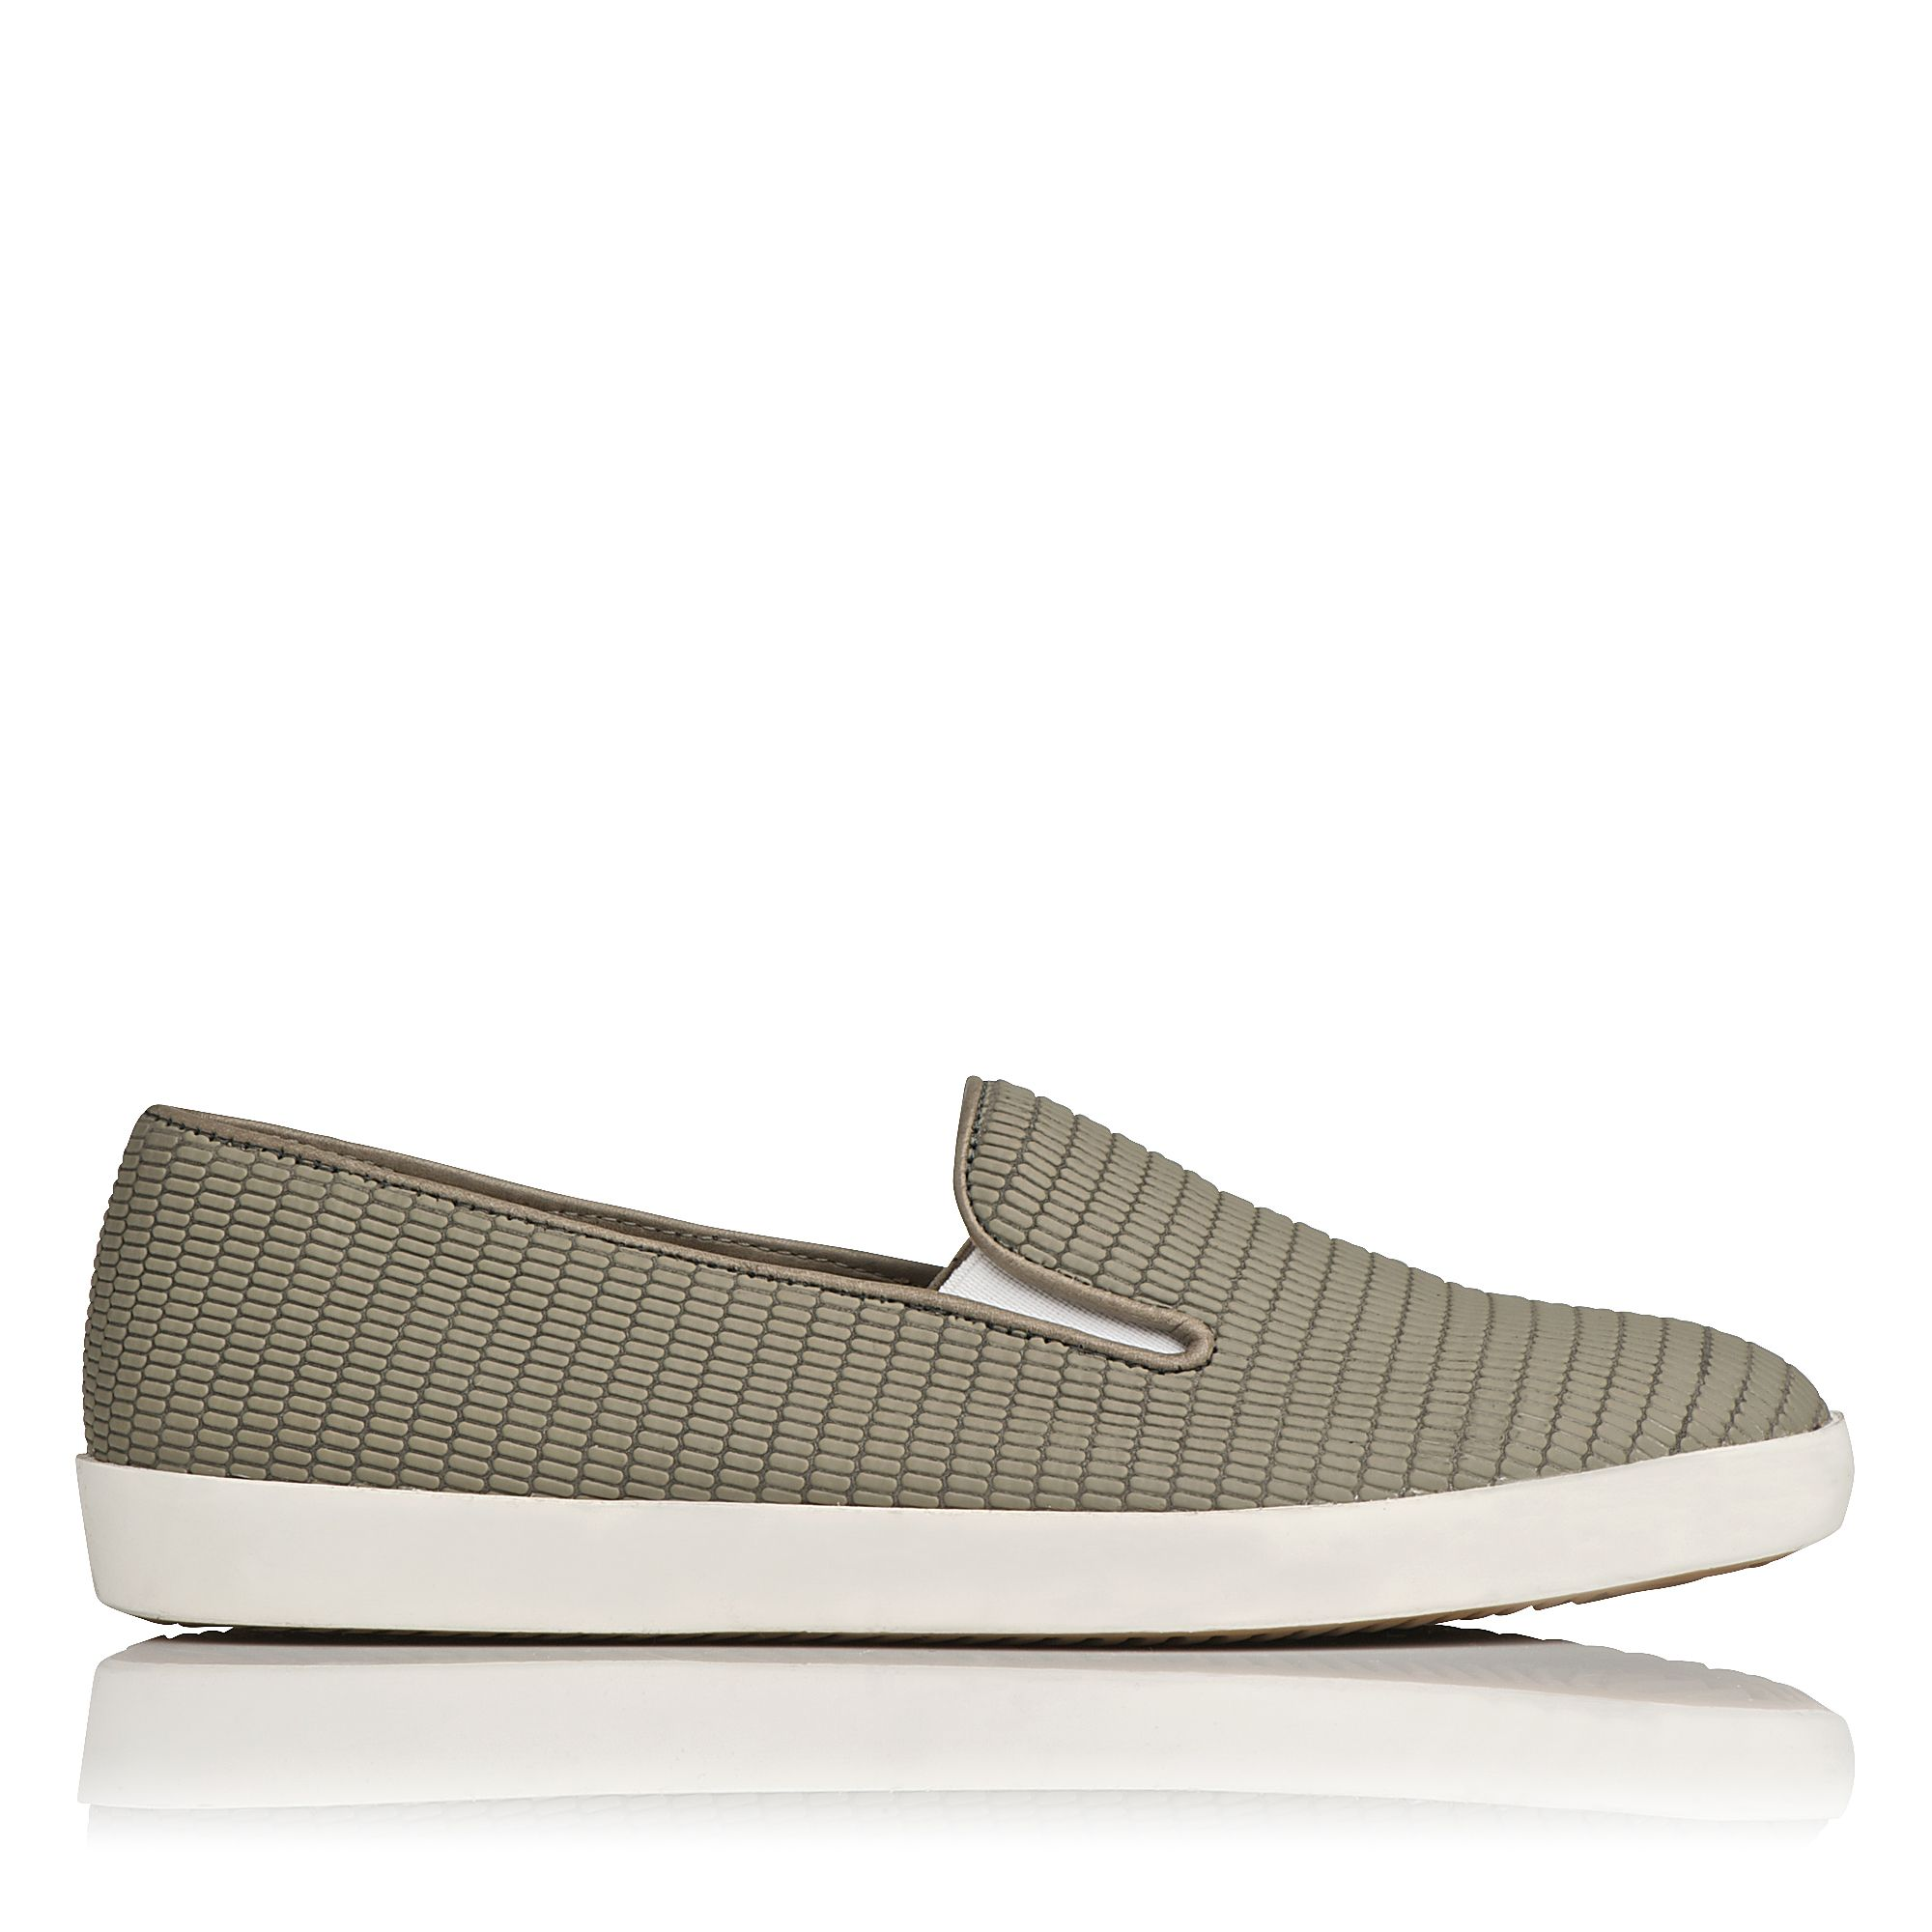 Berna slip-on trainers